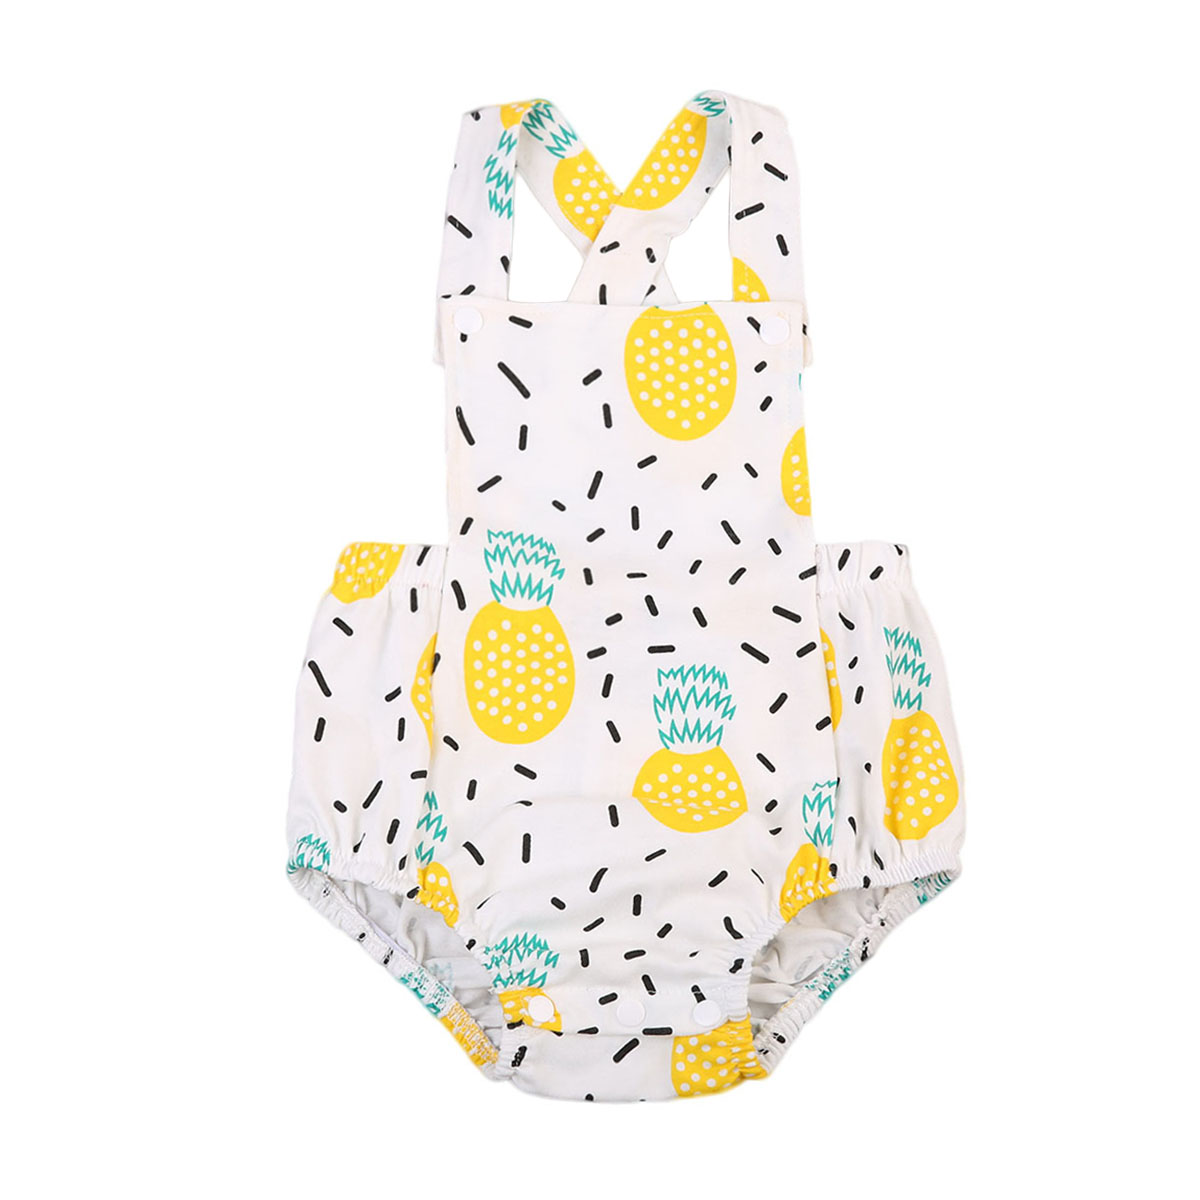 Pudcoco Baby Girl Clothes Baby Girl Cute Pineapple Print   Romper   Summer Cotton Jumpsuit Outfit Playsuit Baby Girl clothing